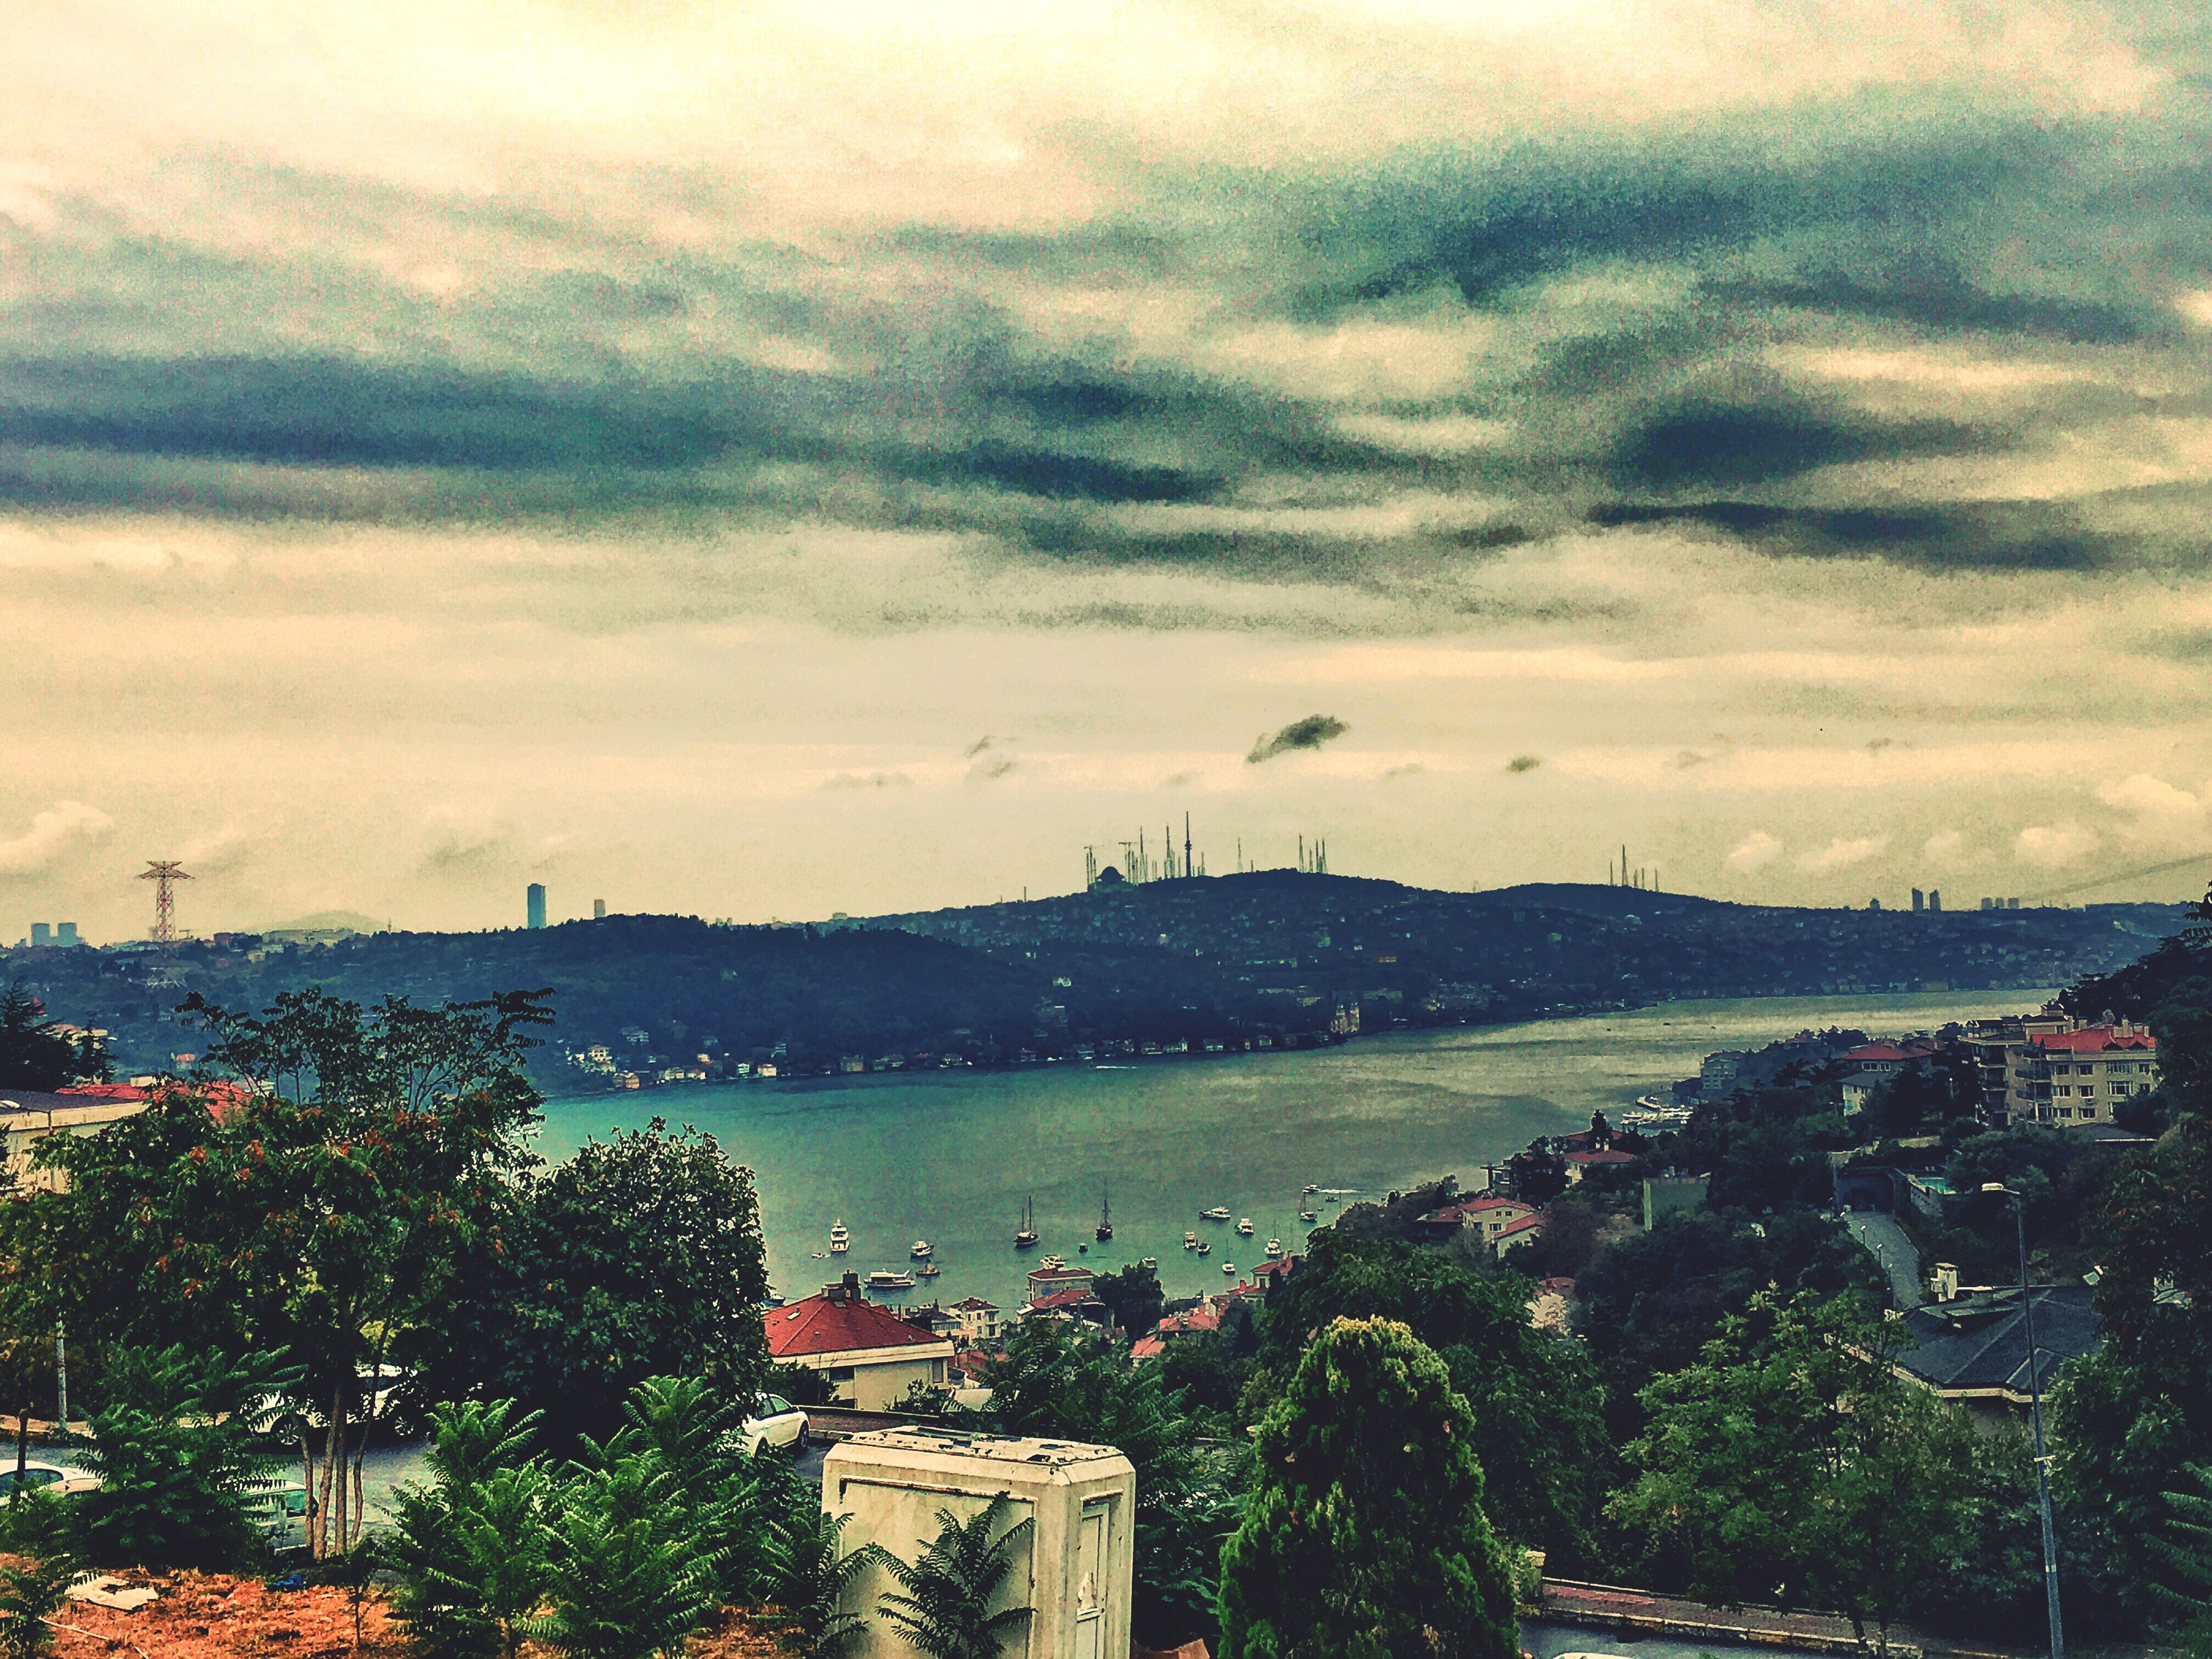 cloud - sky, city, water, tree, cityscape, sky, high angle view, cloudy, architecture, cloud, travel destinations, mountain, sea, scenics, growth, tourism, day, residential district, city life, tranquil scene, outdoors, mountain range, storm cloud, suspension bridge, cloudscape, development, beauty in nature, tranquility